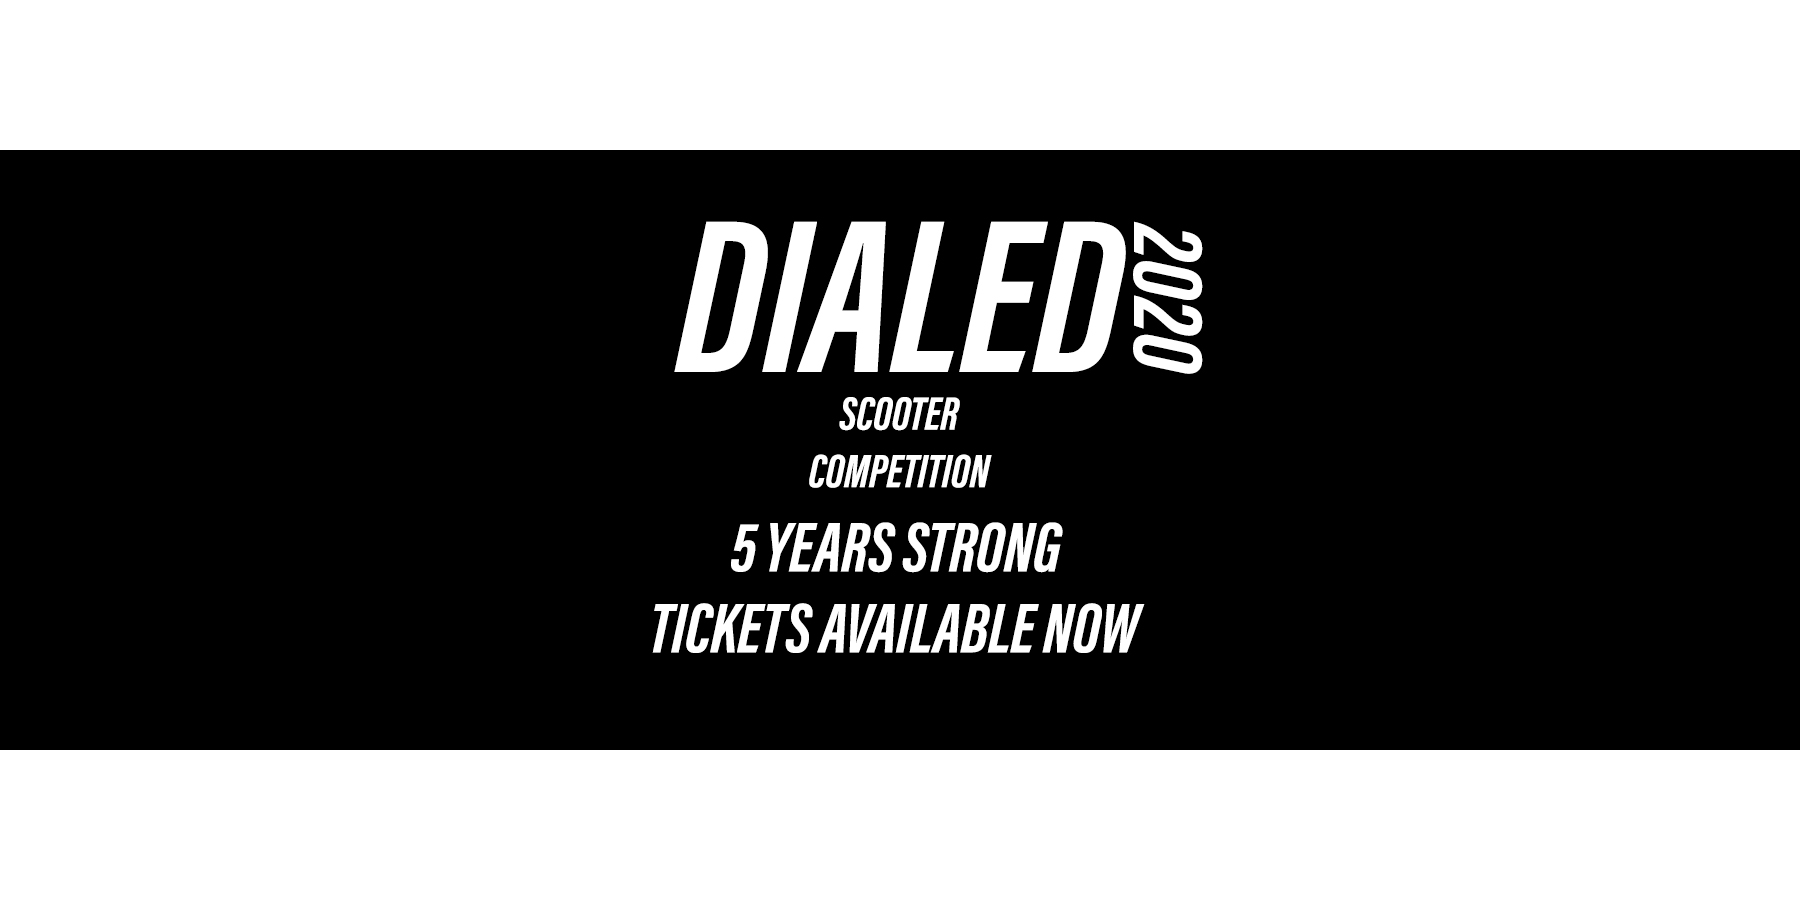 Dialed Scooter Competition 2020